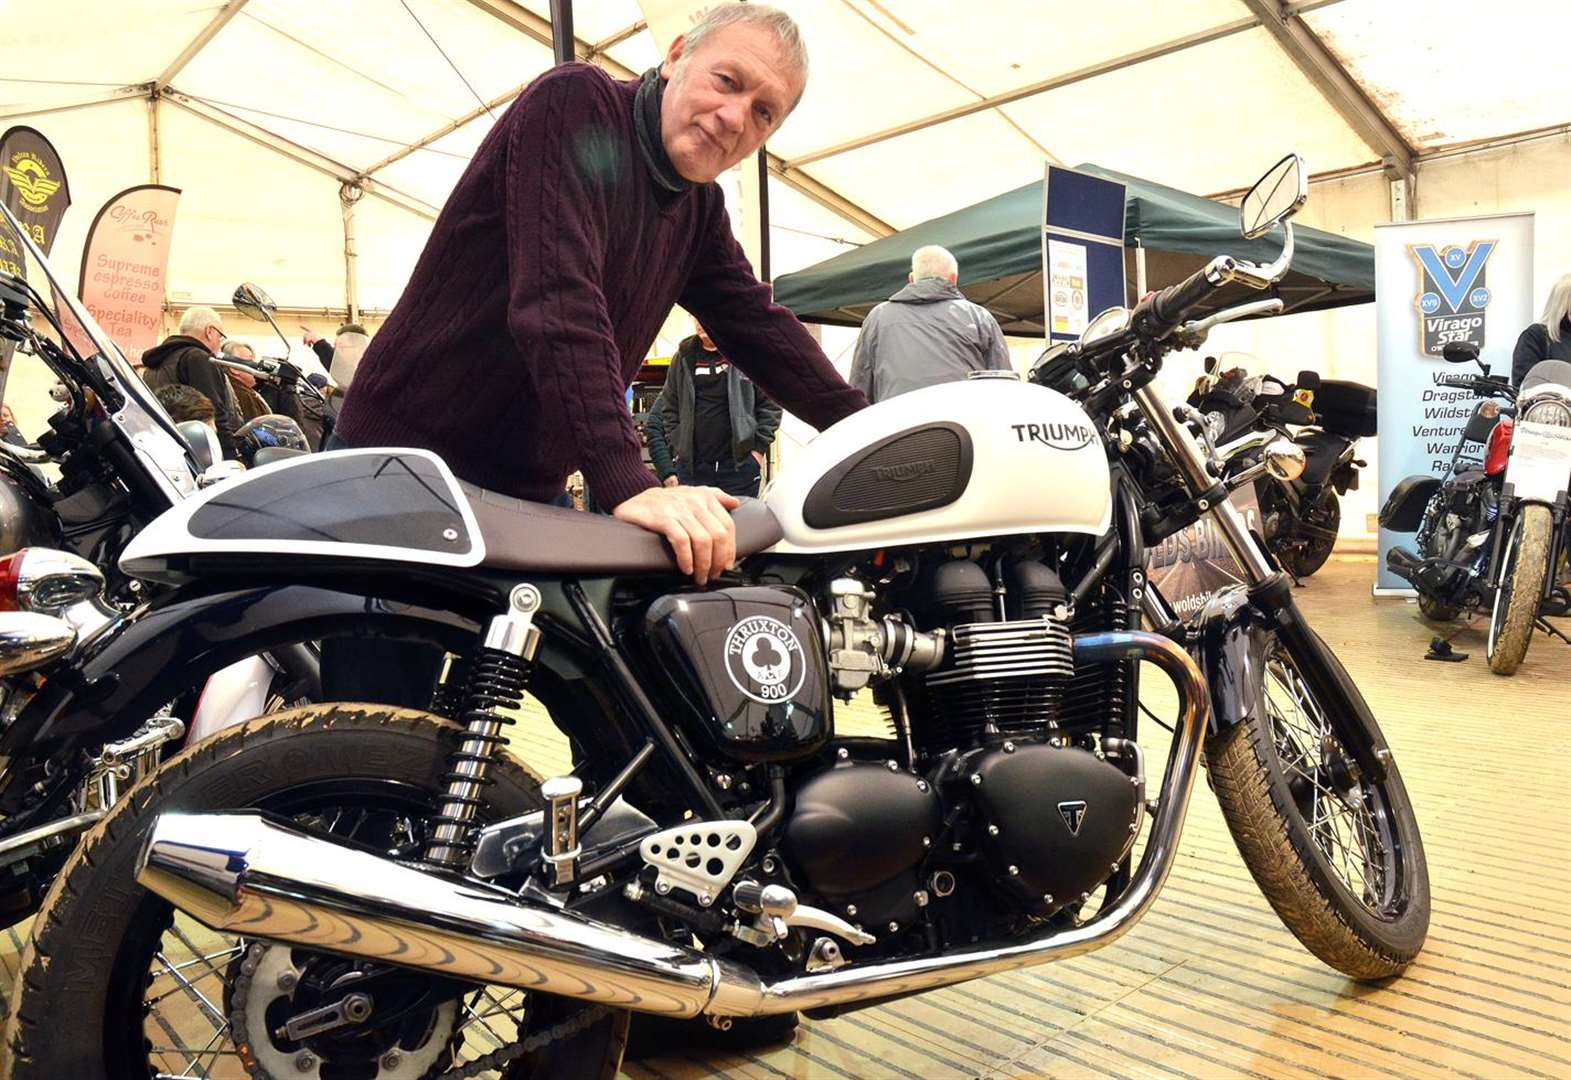 GALLERY: Crowds flock to Springfields Bike Show